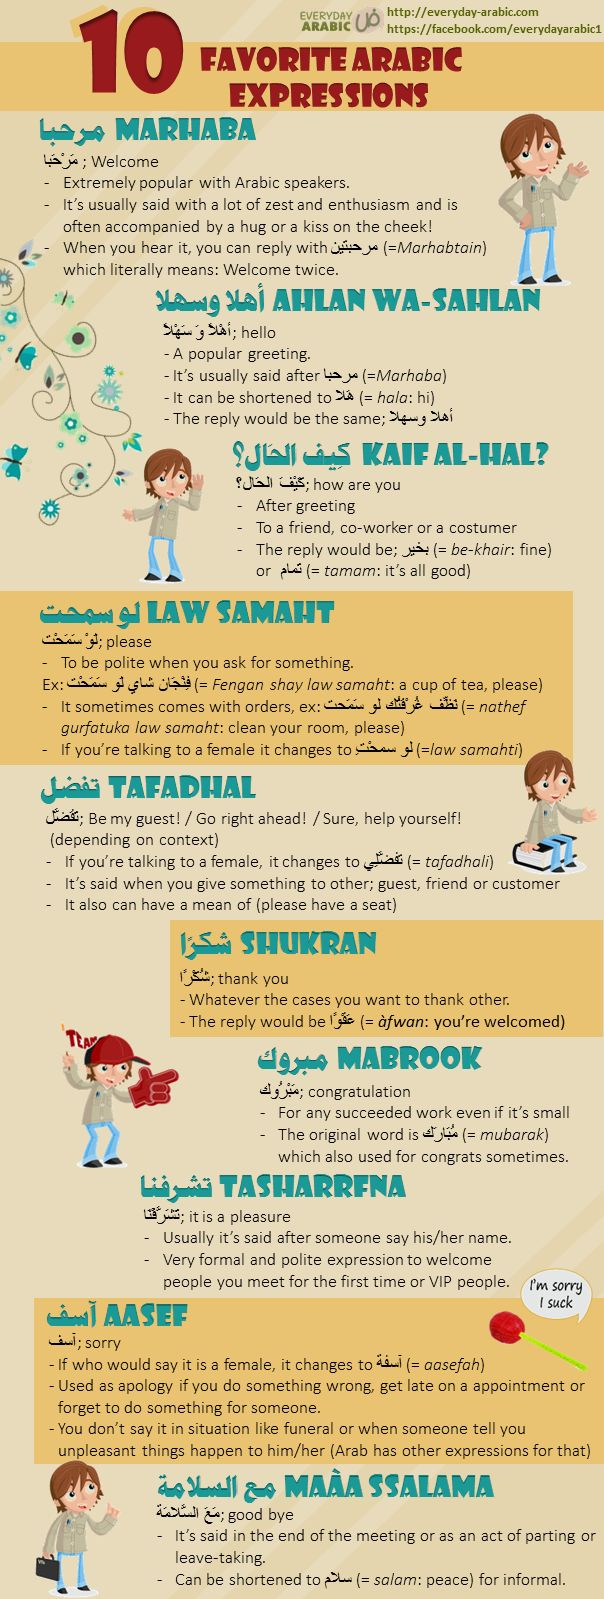 Arabic Expressions that are popular in all Arab countries and used everyday. Every beginner needs to know them.